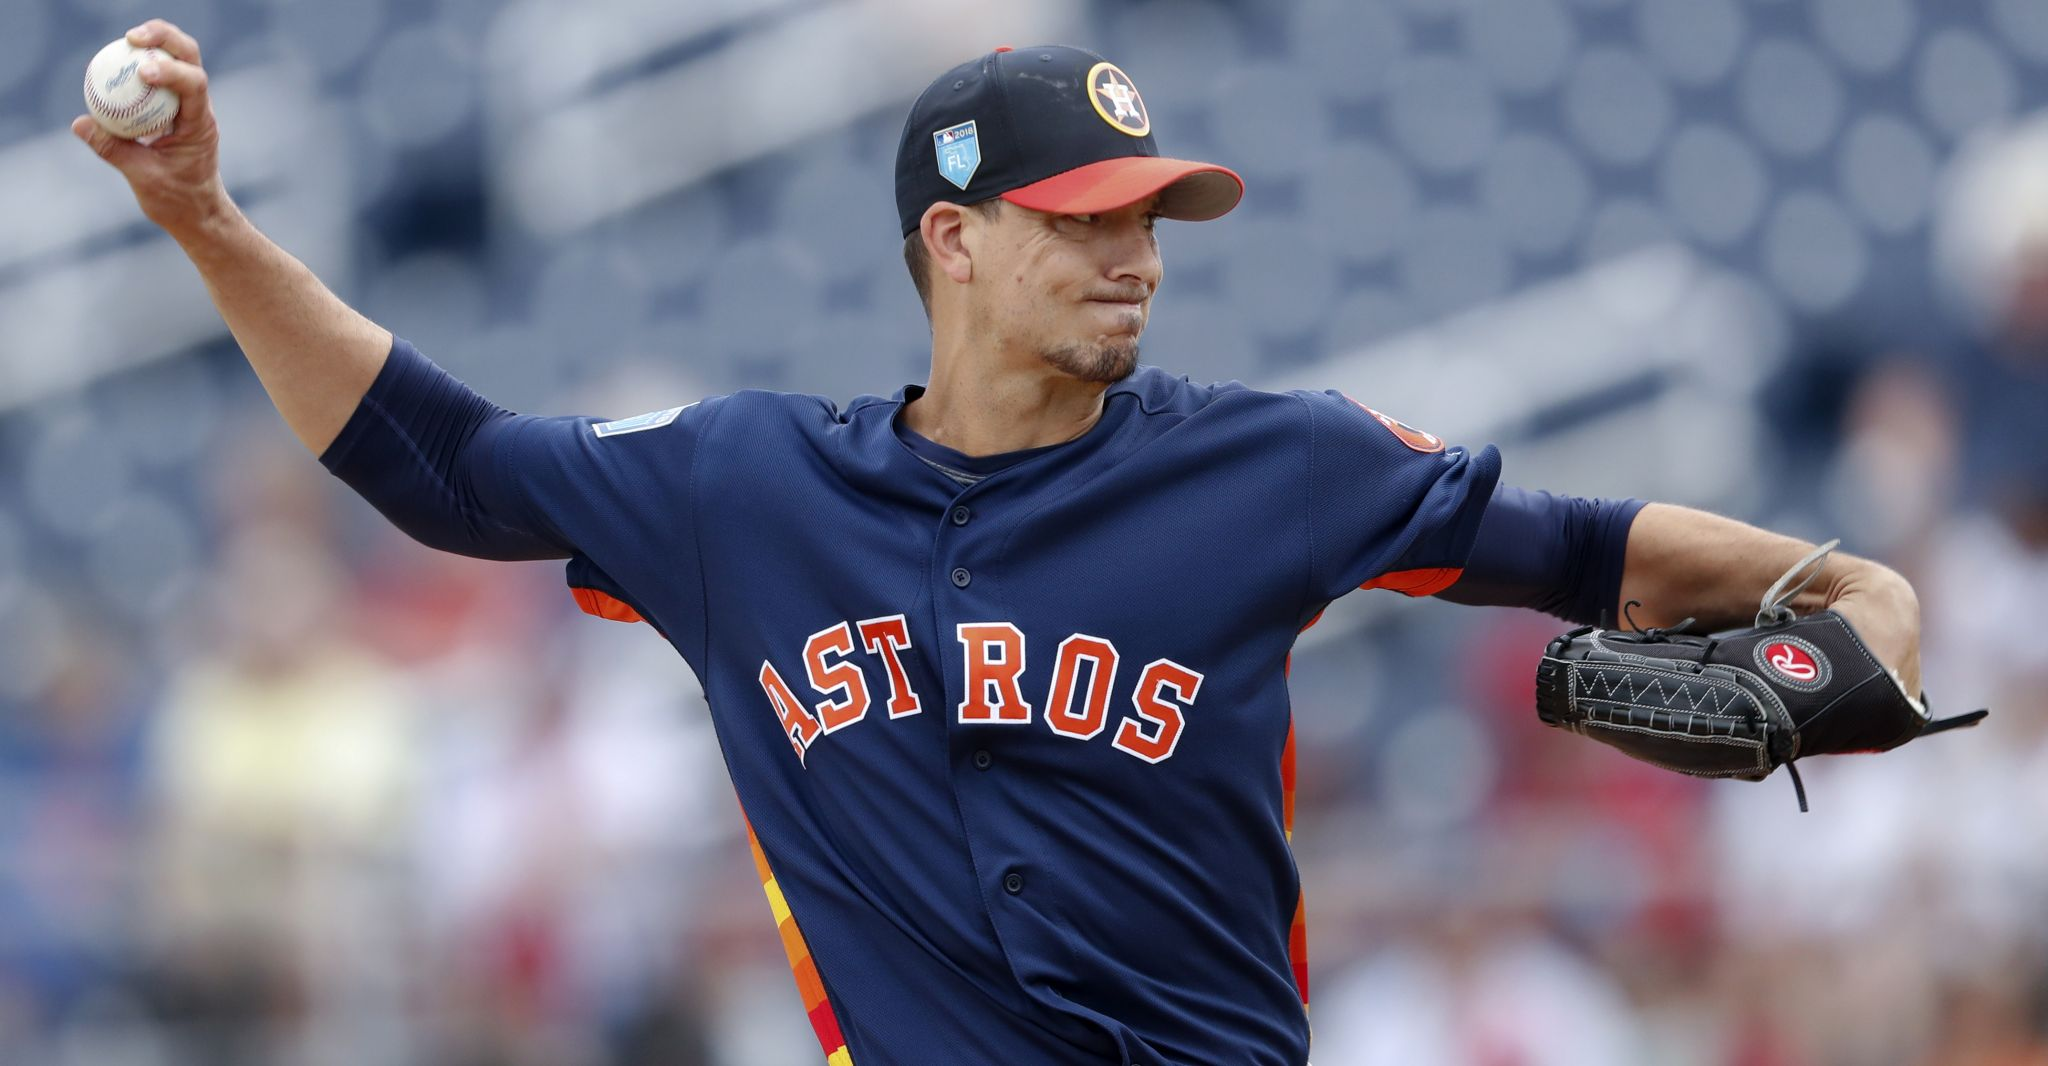 charlie morton - photo #11